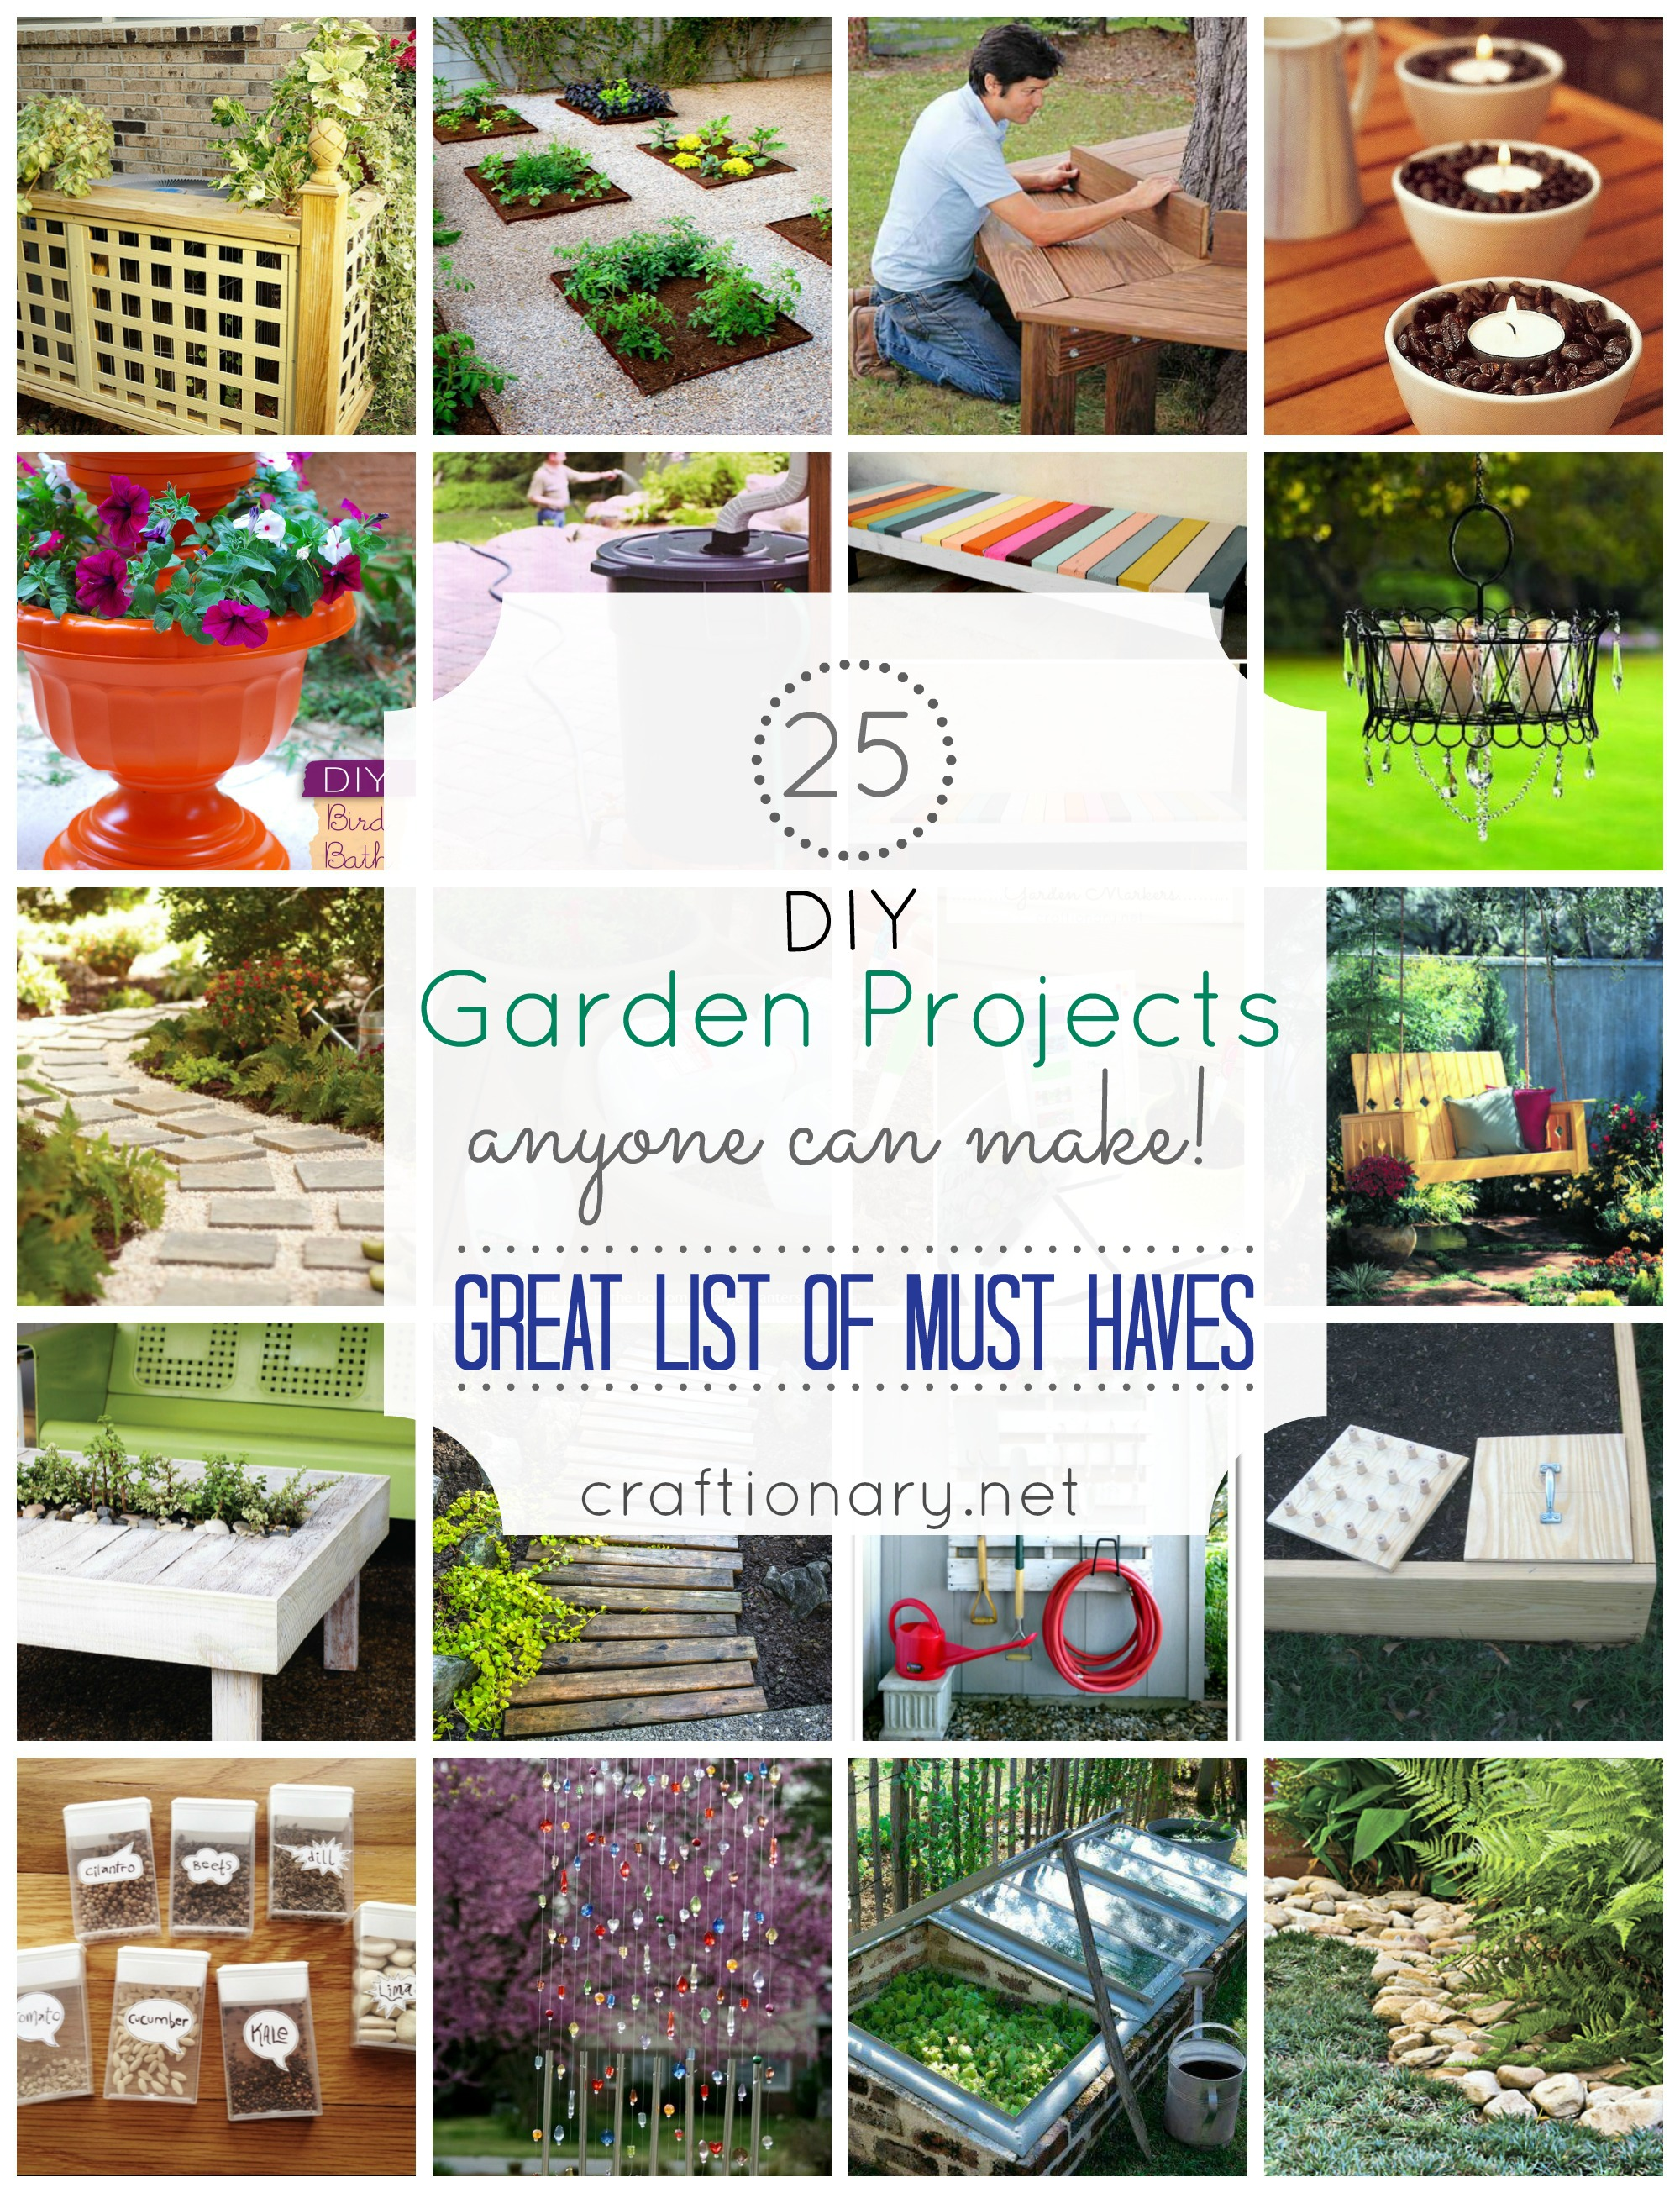 Craftionary for Homemade garden decor crafts